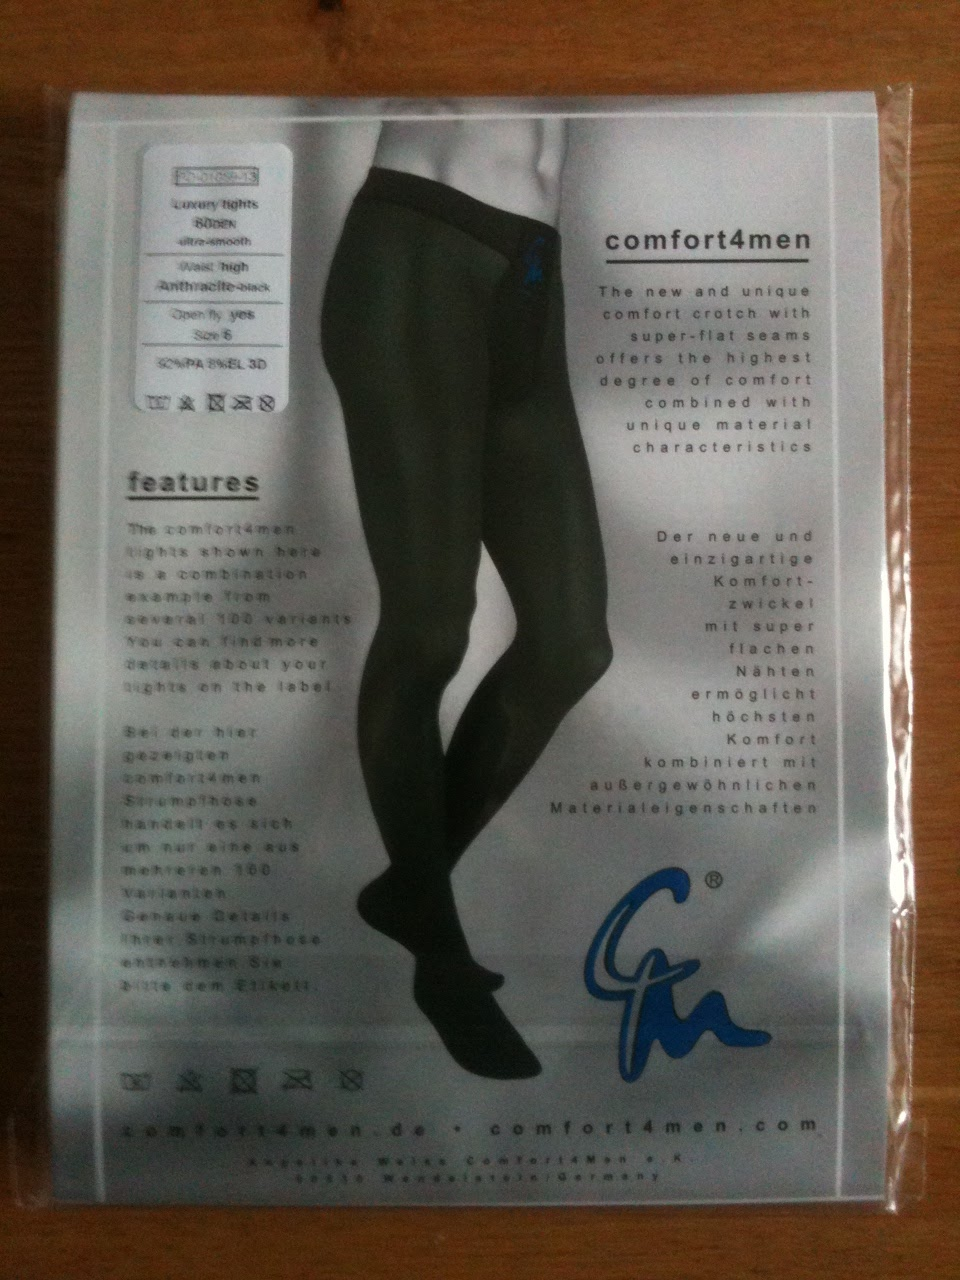 cbd0520f3a After reading the news that Gerbe might be discontinuing their range of men's  tights, it is great that there are retailers like Comfort4Men who are still  ...